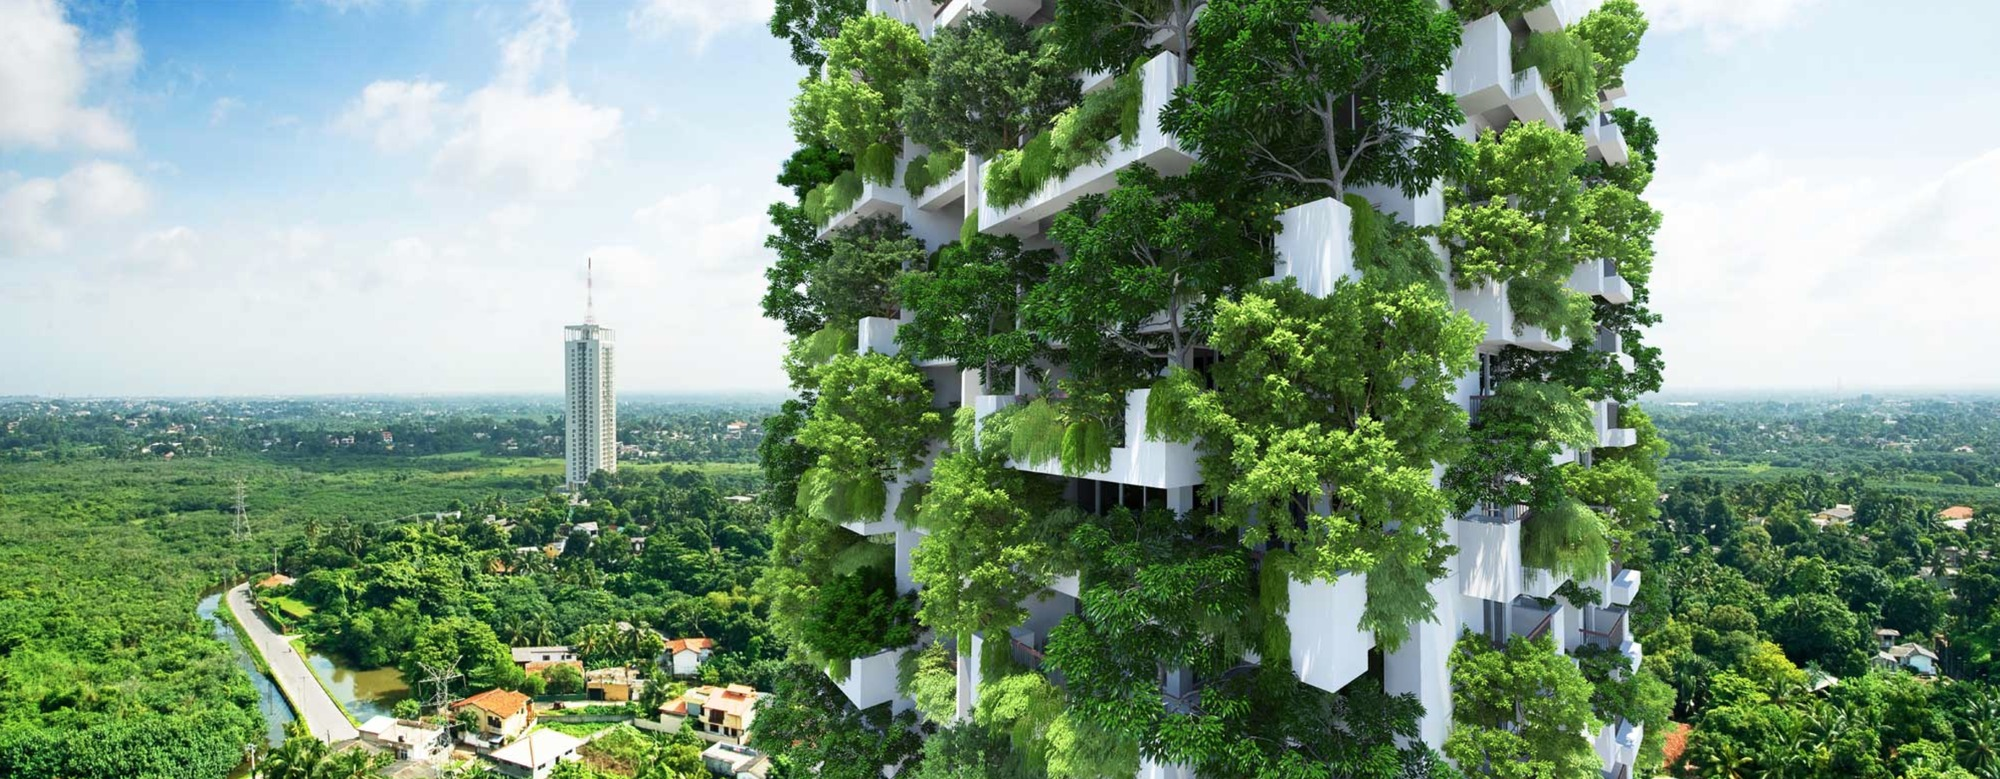 Progressive Architects Love To Incorporate Plants Into Their Projects.  Milroy Perera Associates Have Recently Designed The Worldu0027s Tallest Vertical  Garden.